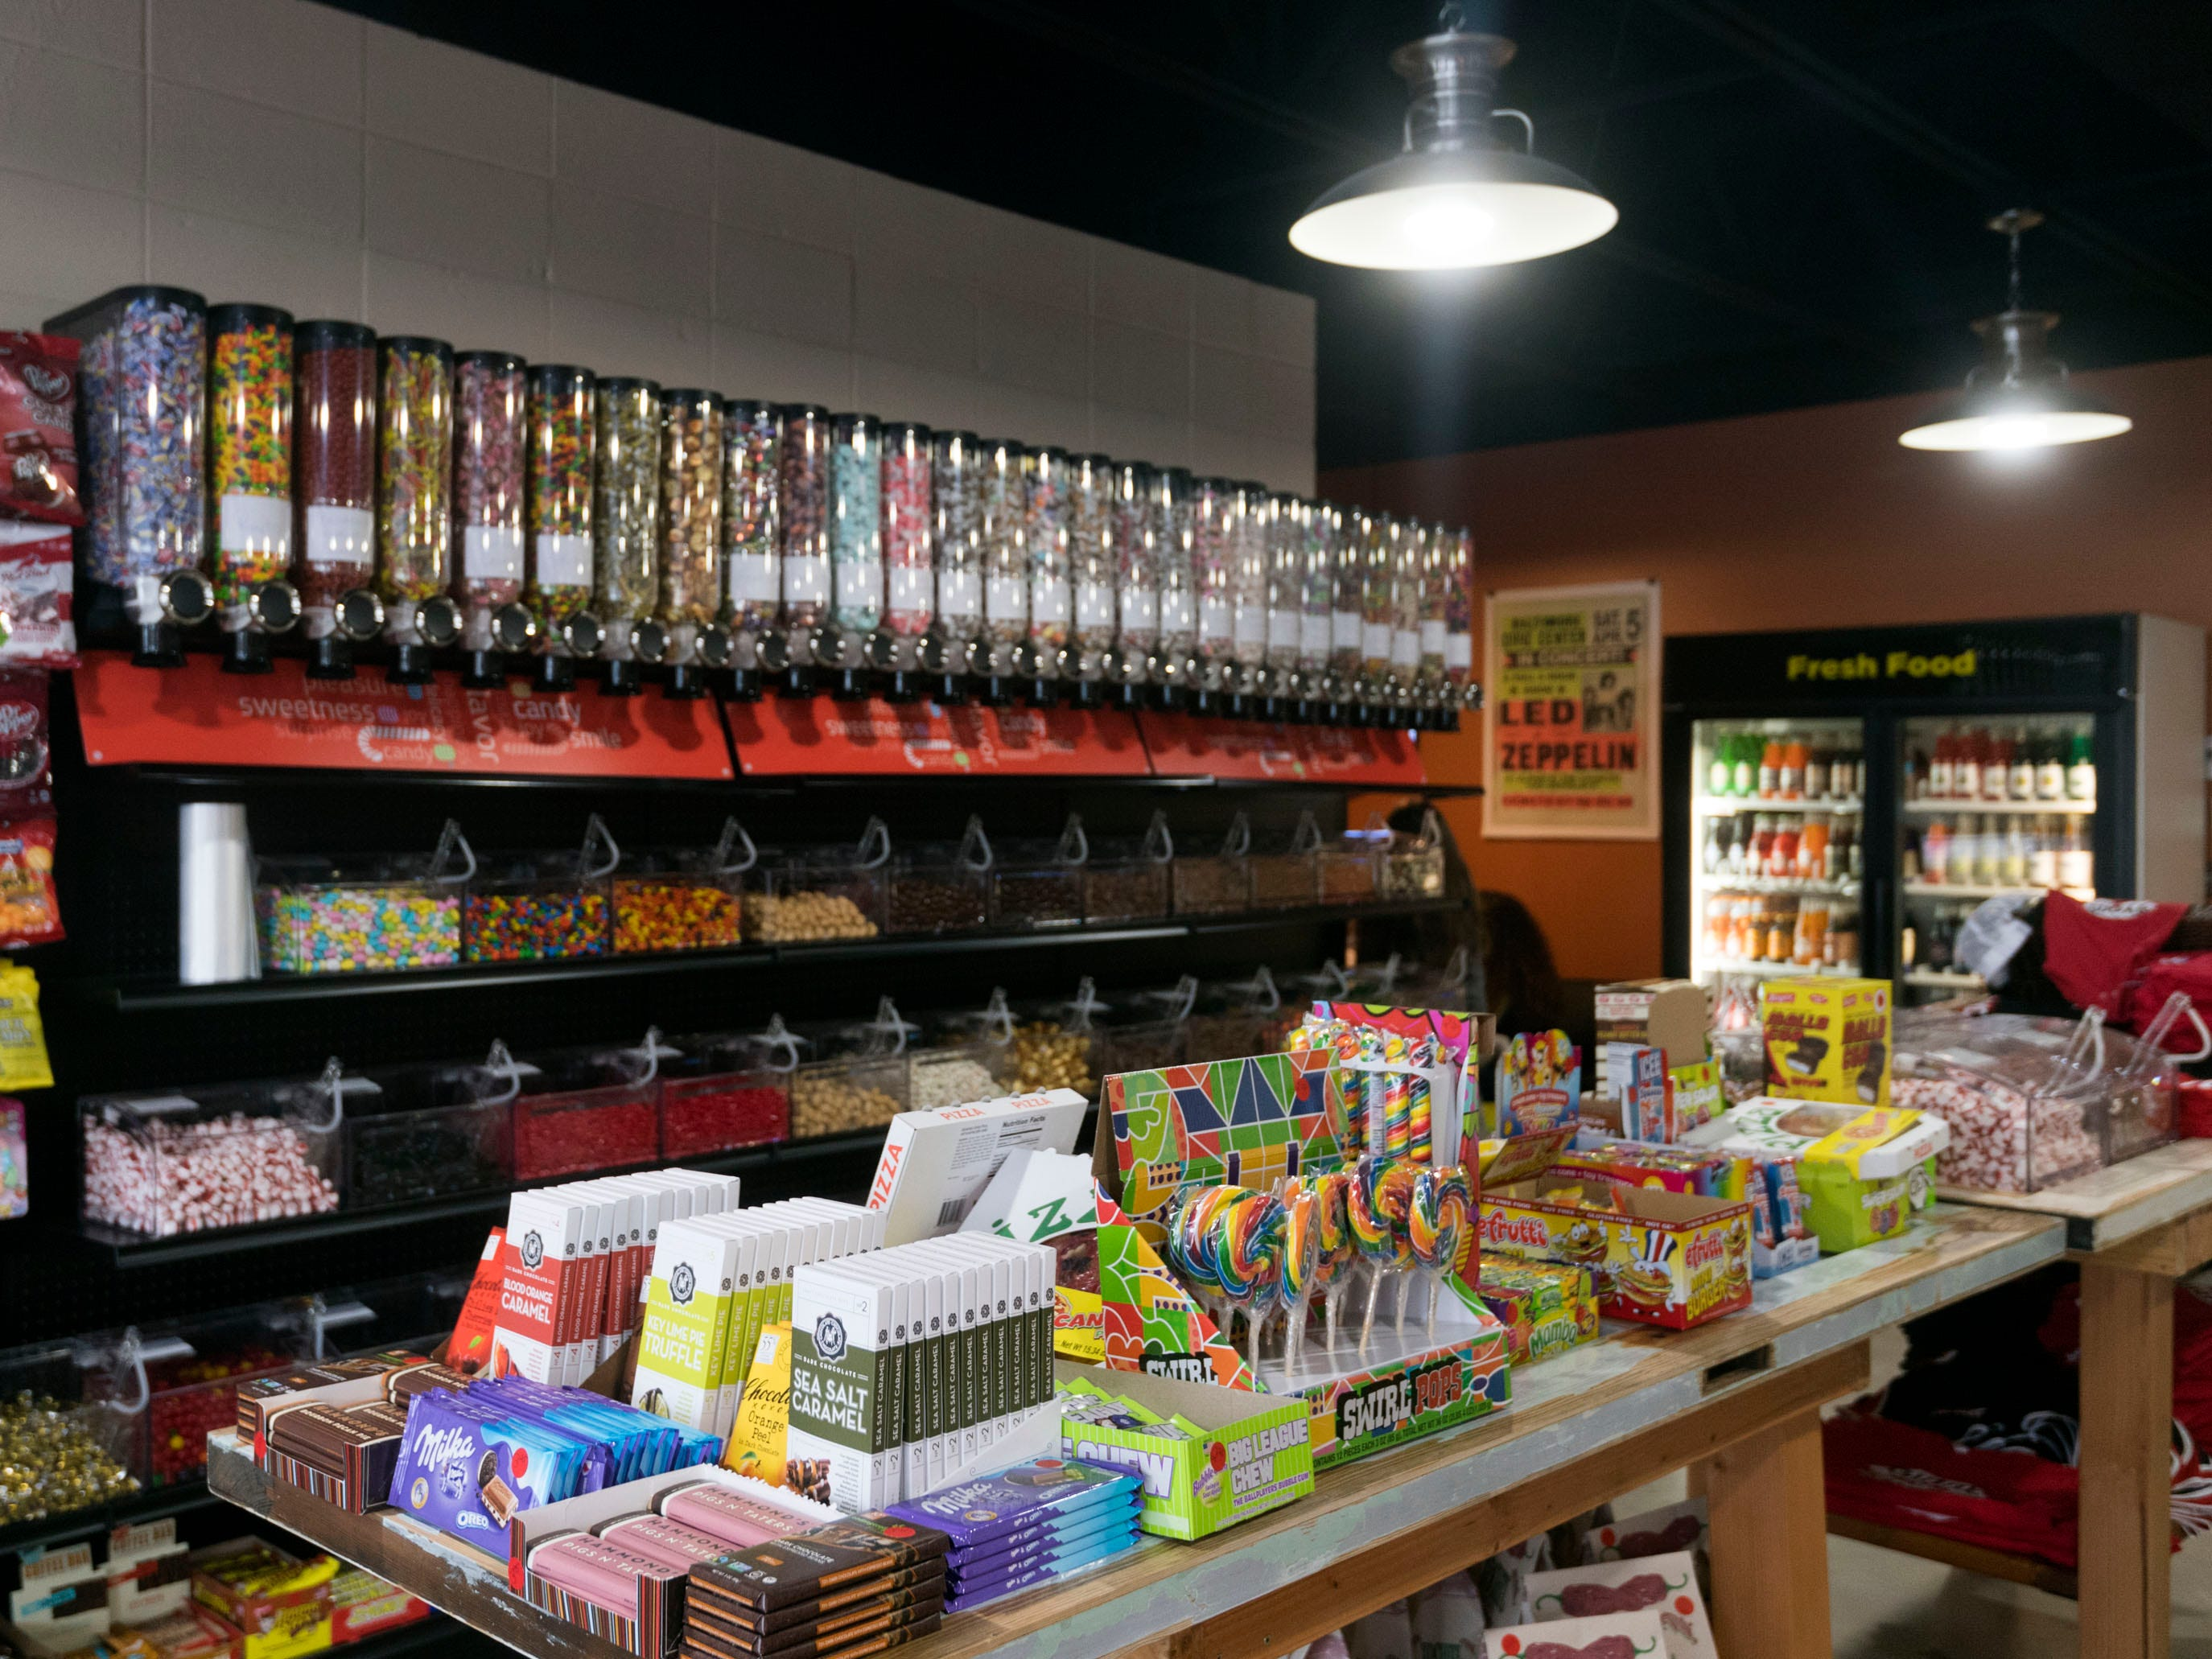 Gimme Sugar features a variety of candies, sodas, and chocolates.